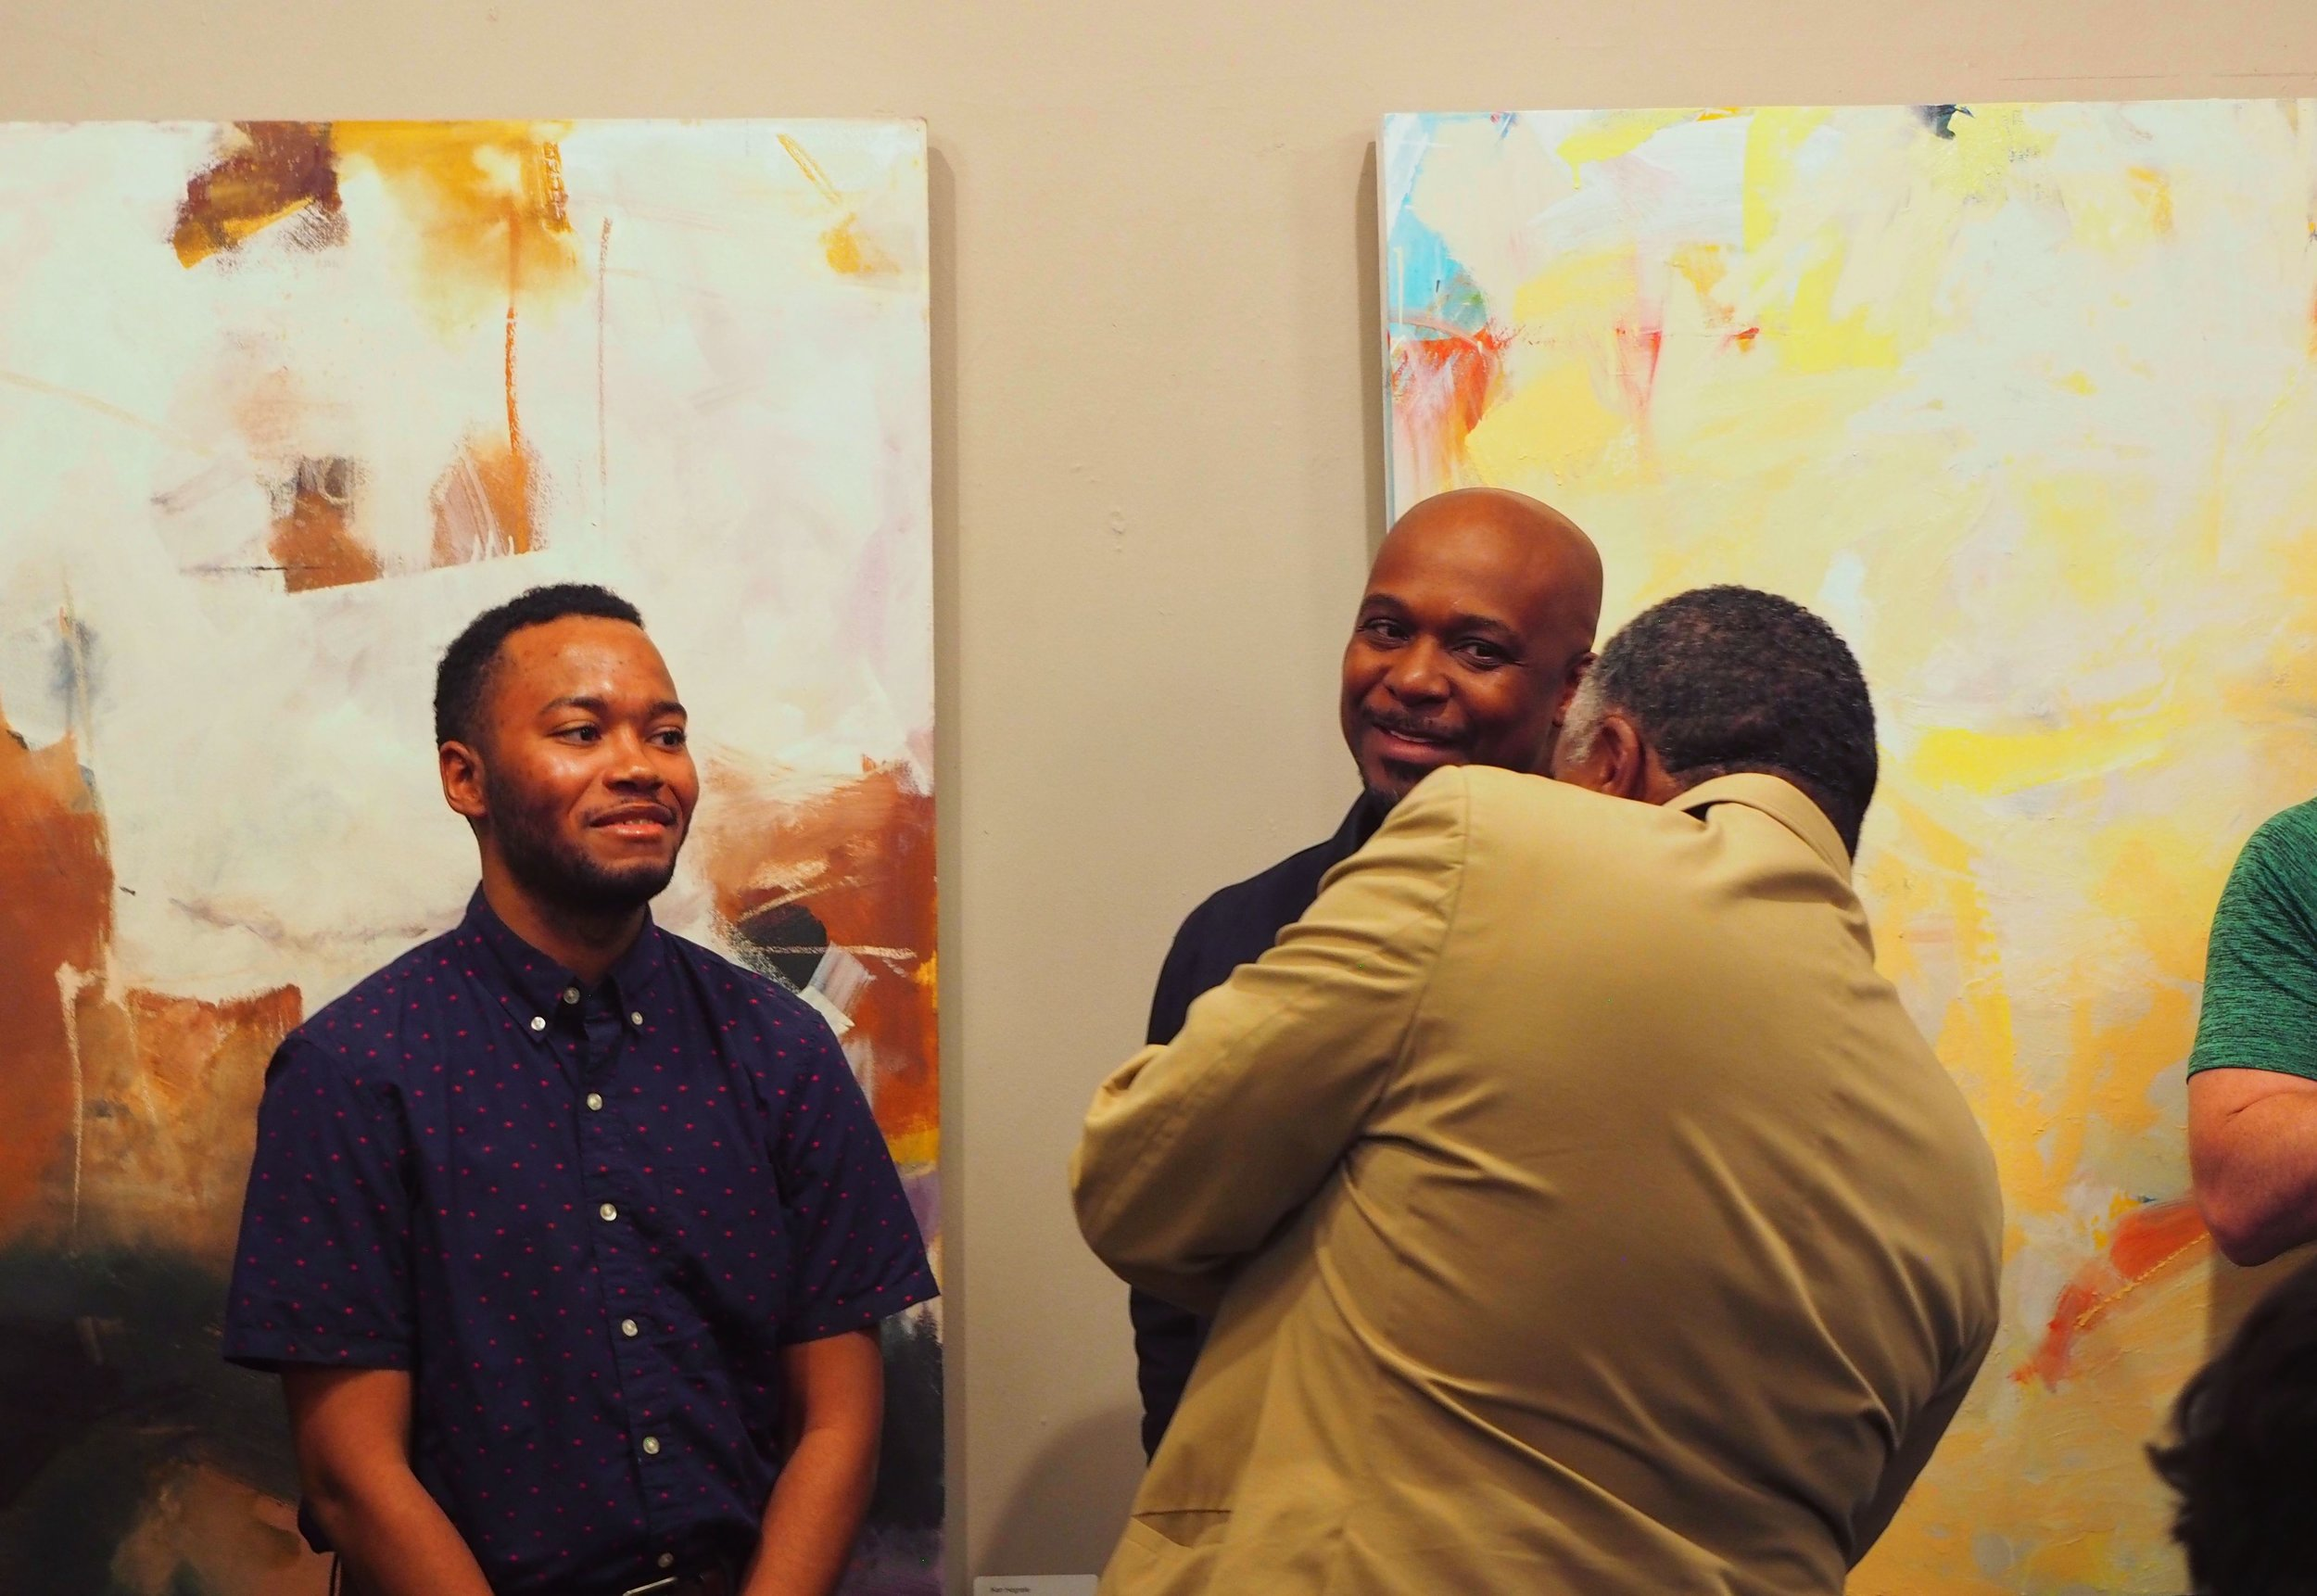 Attendees enjoying the Opening Reception. Paintings in photo by Julie Tierney and Ken Hogrefe.